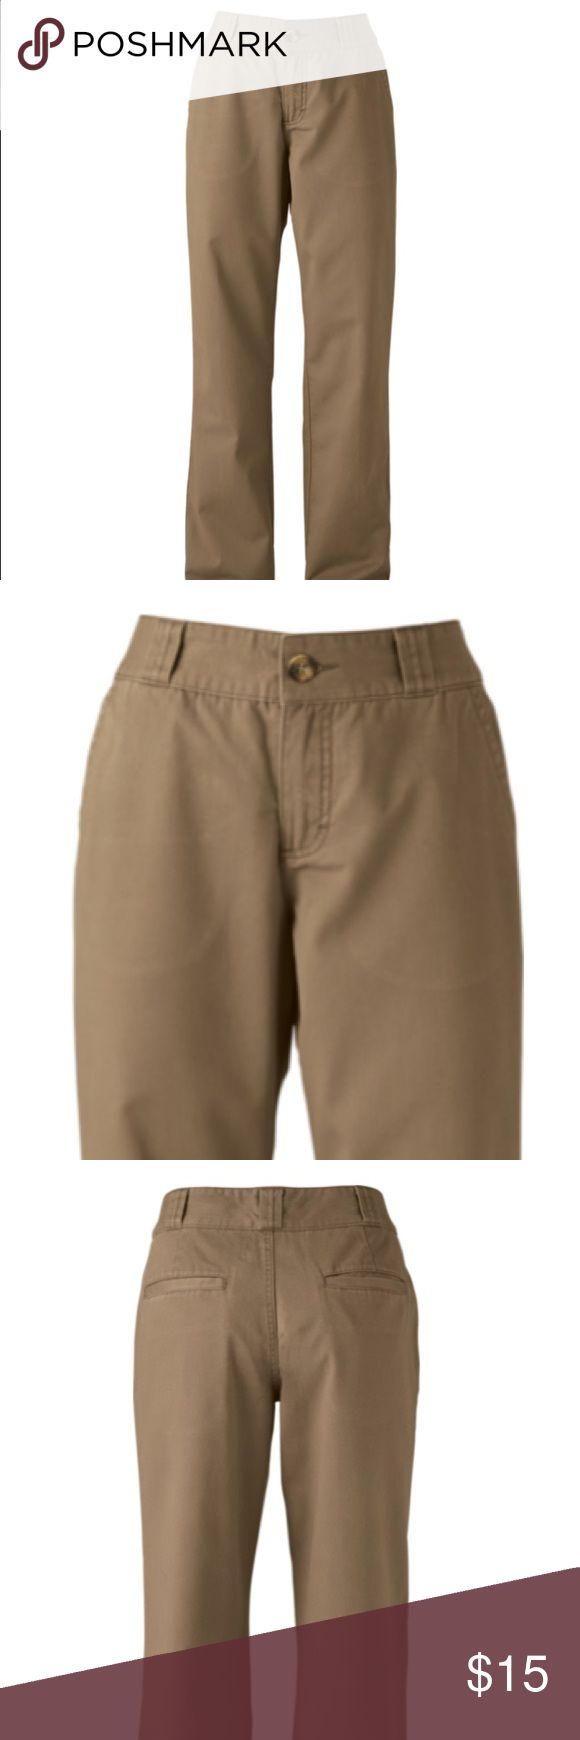 "Size 14 Khaki school pants Cabelas Chino pants. Color Khaki sz 14 (2 available) Front and back pockets. 2"" waistband with 1"" belt loops. 100% cotton twill. Worn several times but no stains or rips. Cabela's Pants Boot Cut & Flare"